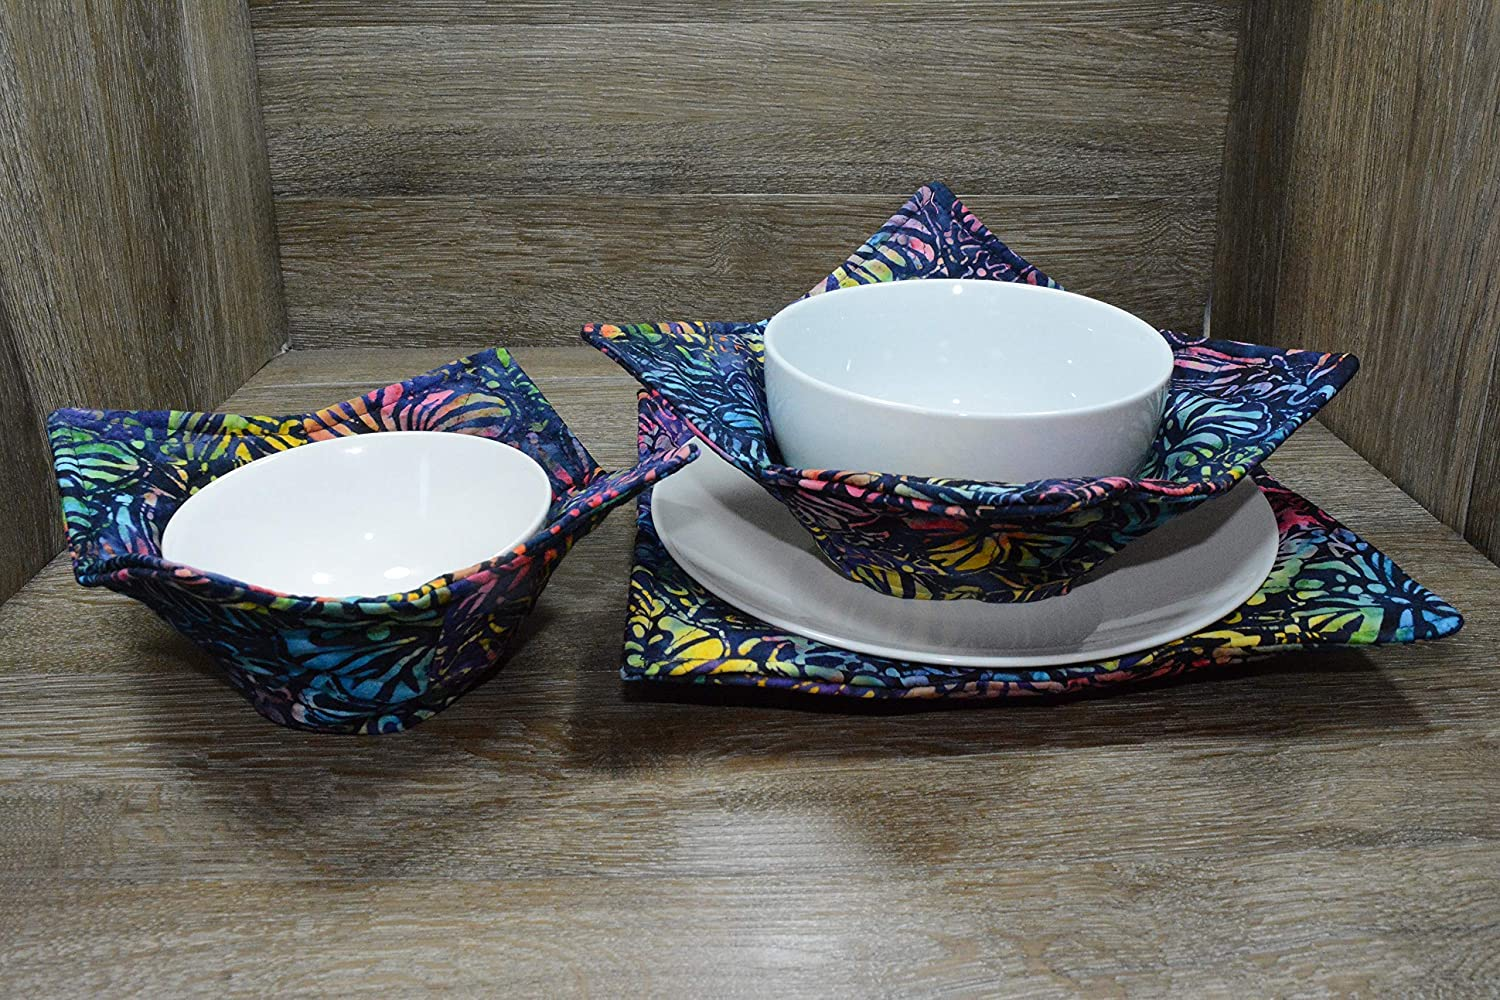 Set of 3 1 Small Bowl Cozy Microwave Bowl Cozies Tropical Flowers 1 Medium Bowl Cozy and 1 Dinner Plate Cozy